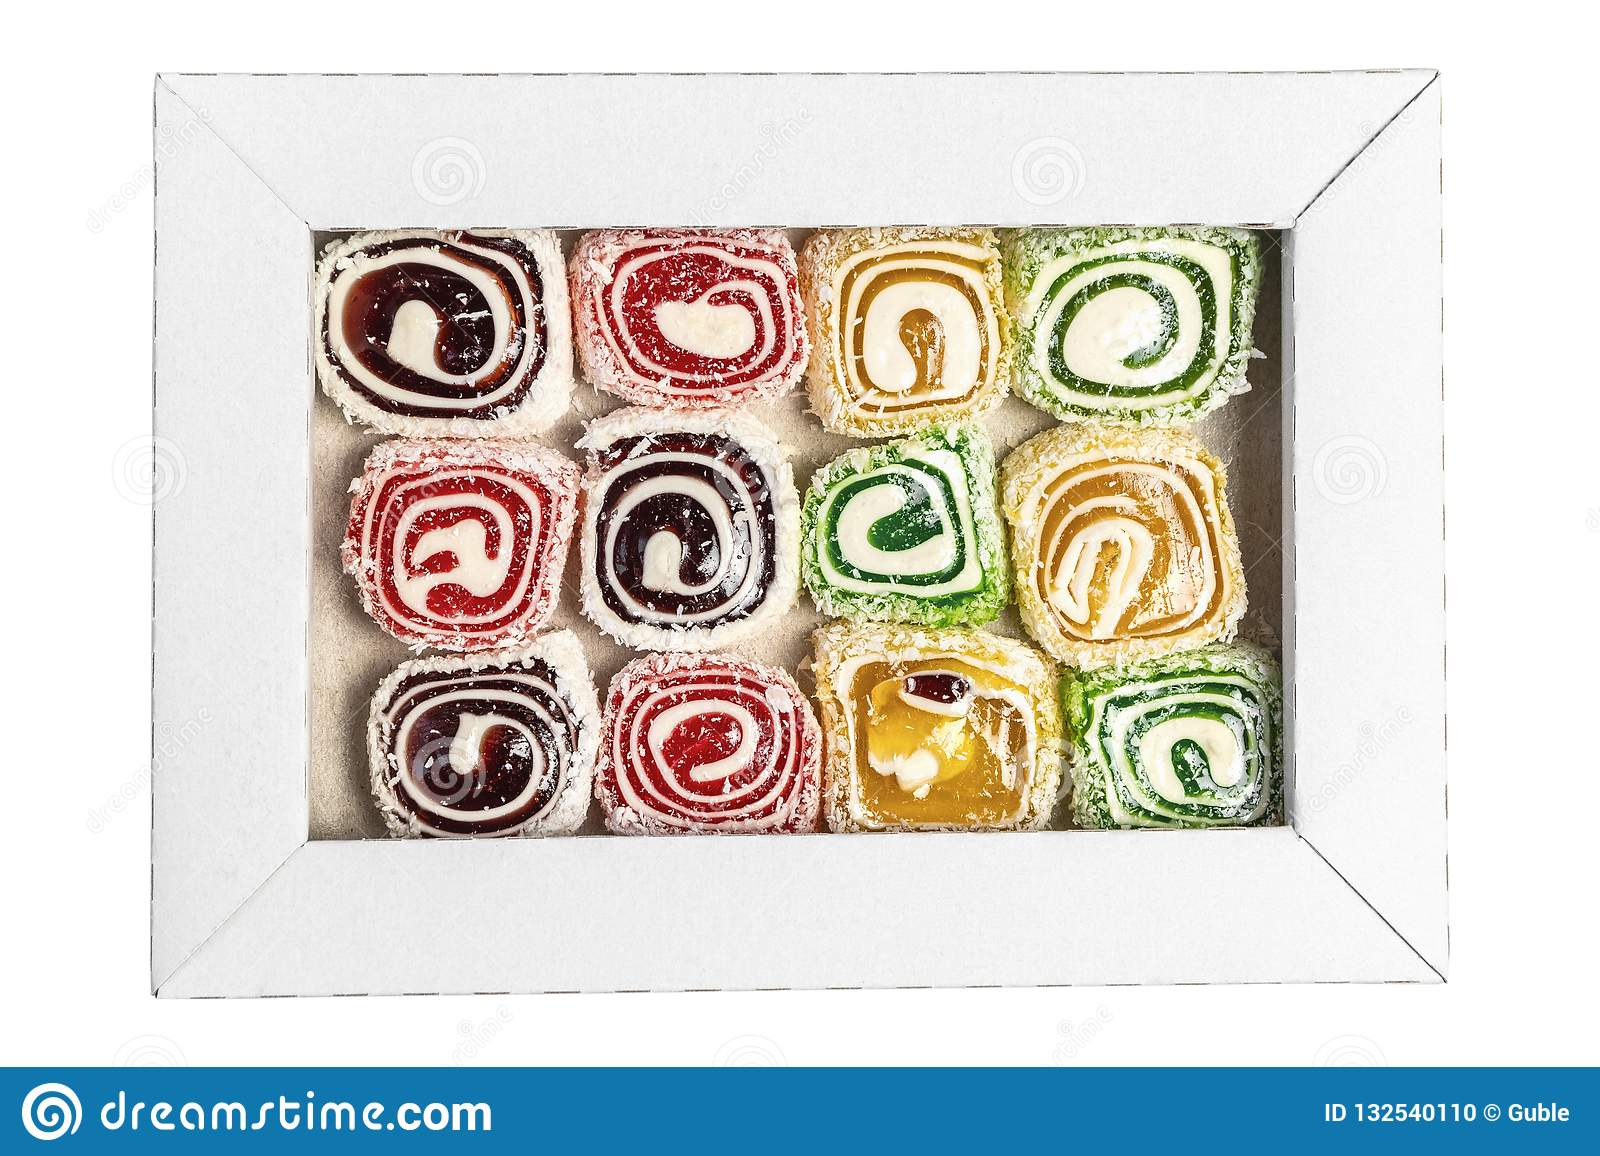 Turkish delight in the box isolated on a white background. Sweet candies in the box. Candy texture